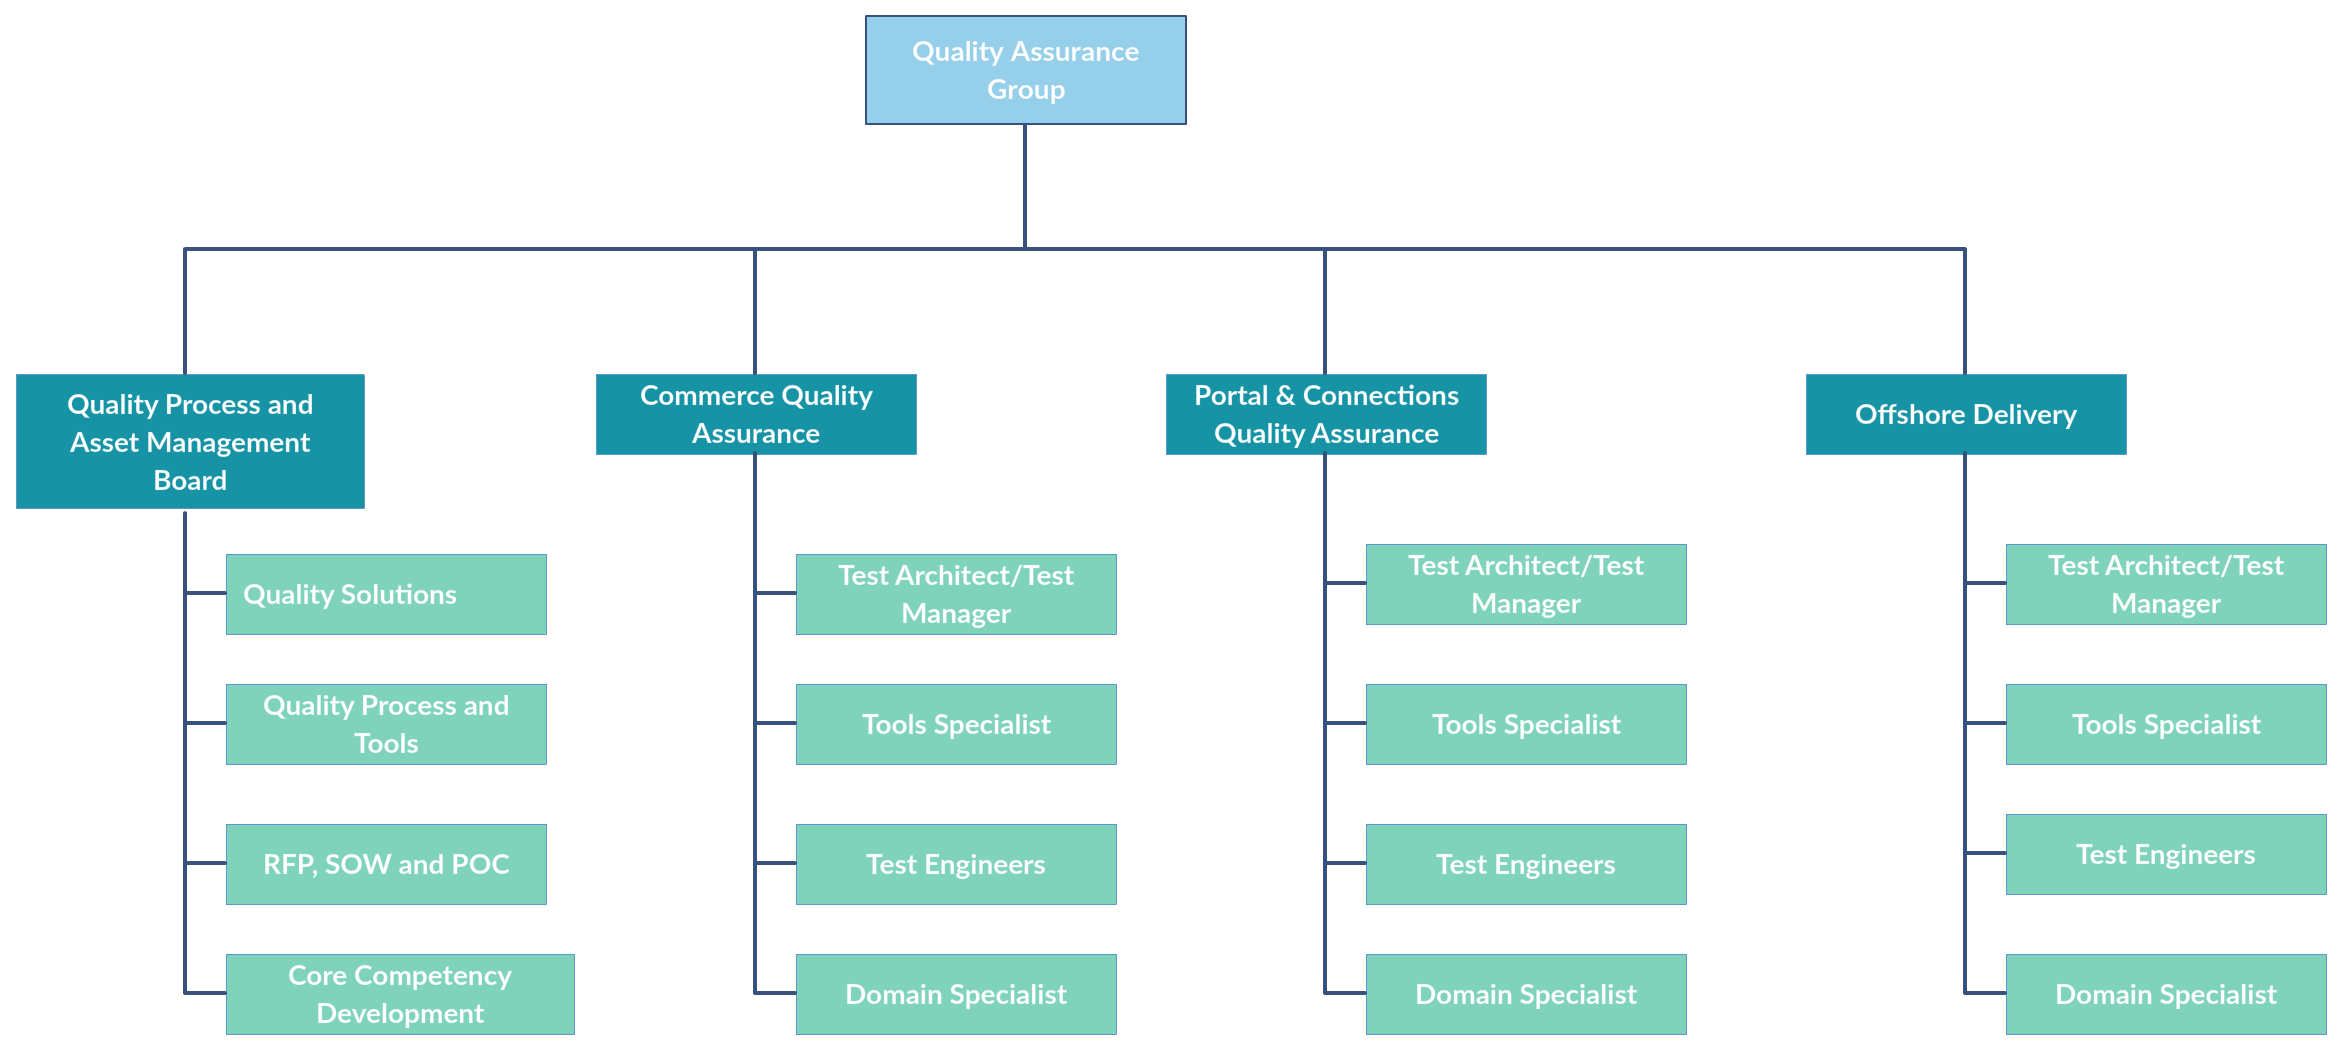 In this org chart template it illustrates a dedicated group for